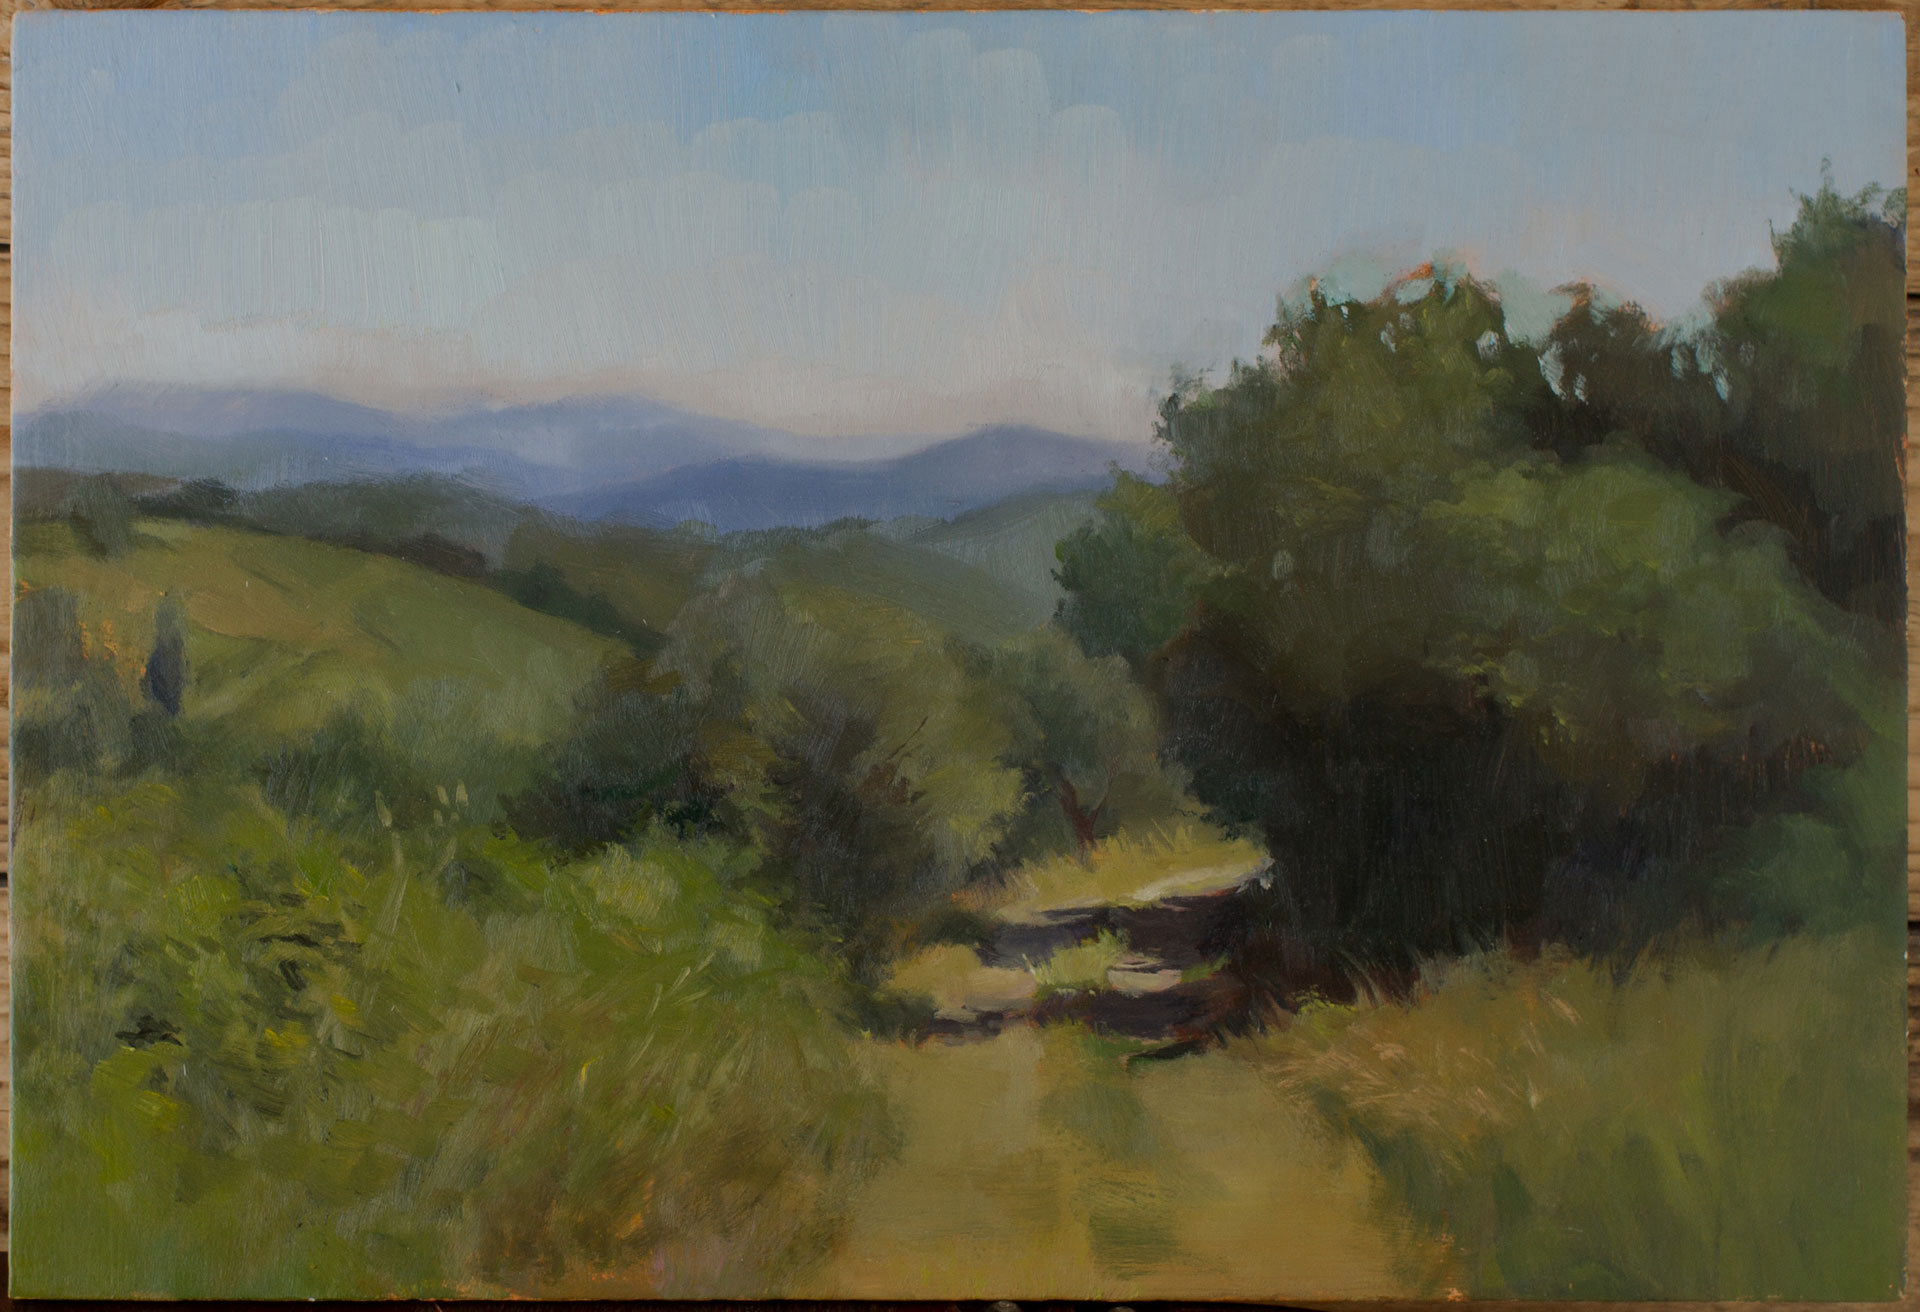 Pathway into tuscan hills - Sahra Becherer (Teacher)